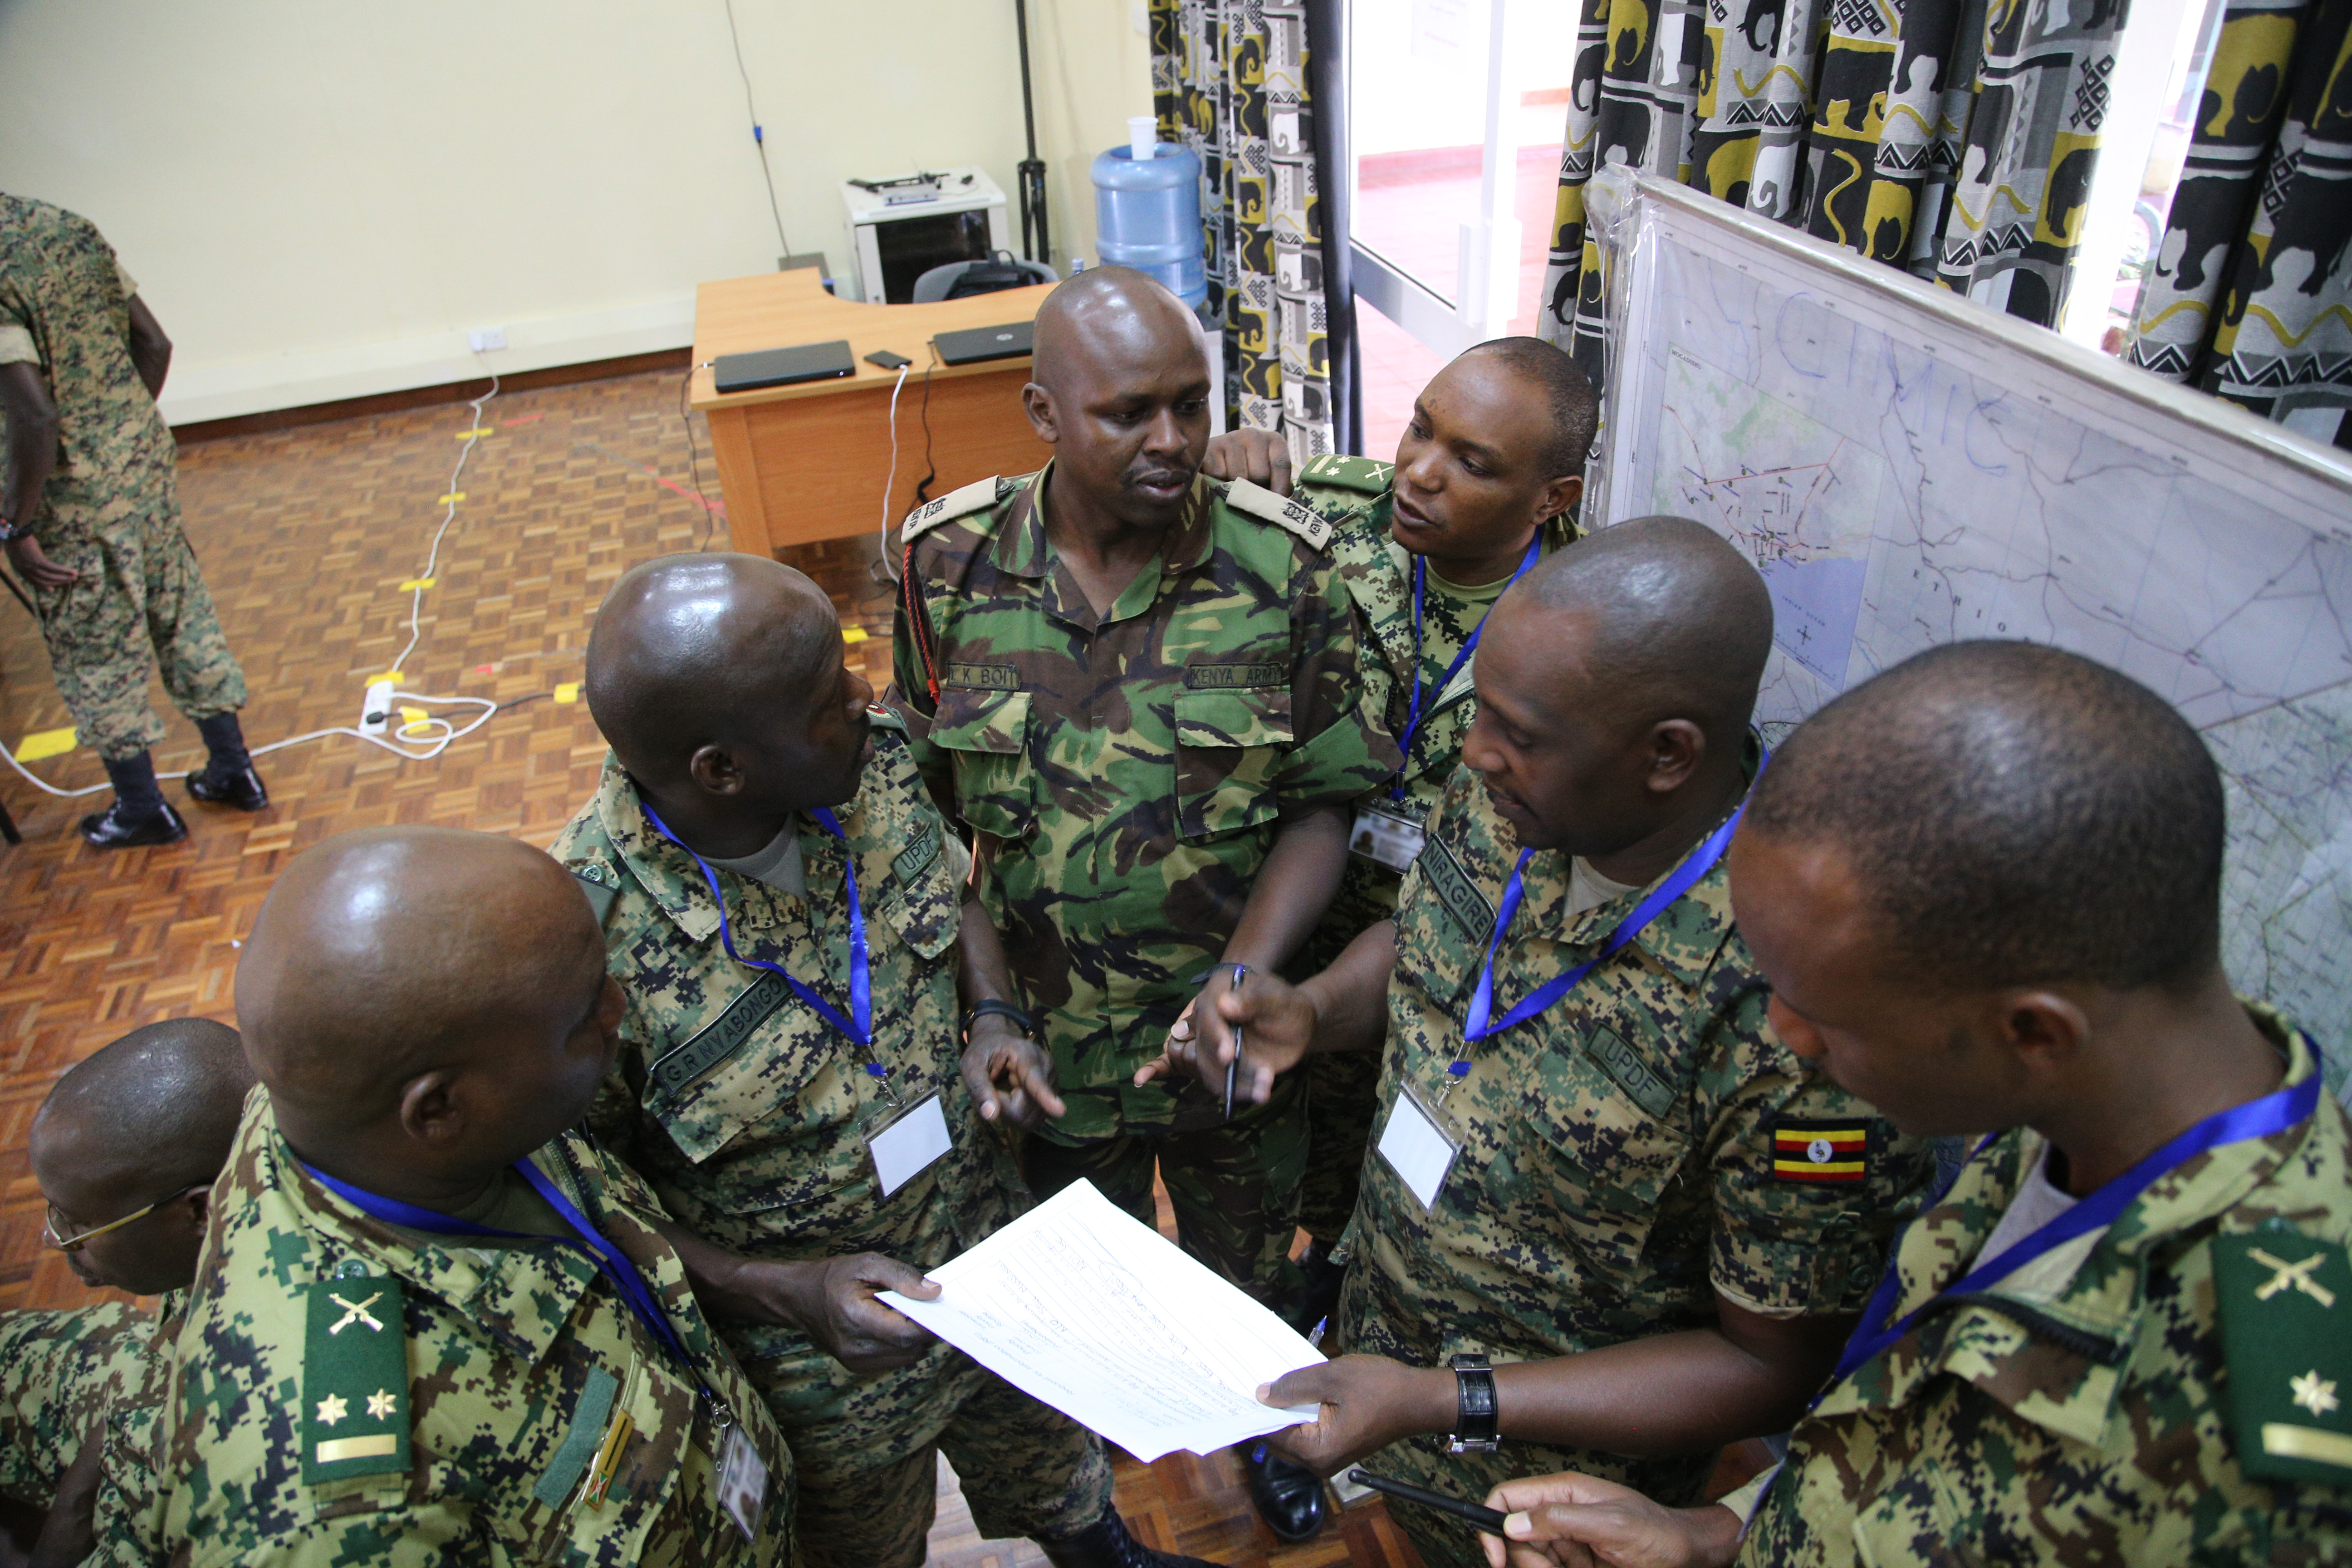 Officers from Uganda, Kenya and Burundi assigned to the Civil-Military Cooperation cell react to a simulated crisis, and prepare courses of action during the command post exercise of the Africa Contingency Operations Training and Assistance force headquarters training program held at the Humanitarian Peace Support School in Nairobi, Kenya, March 9, 2017. The five-week course was facilitated by the U.S. Department of State and is designed to improve Africa's military capabilities by providing selected training necessary for multinational peace support operations. (U.S. Army photo by Capt. Alán Ortiz)